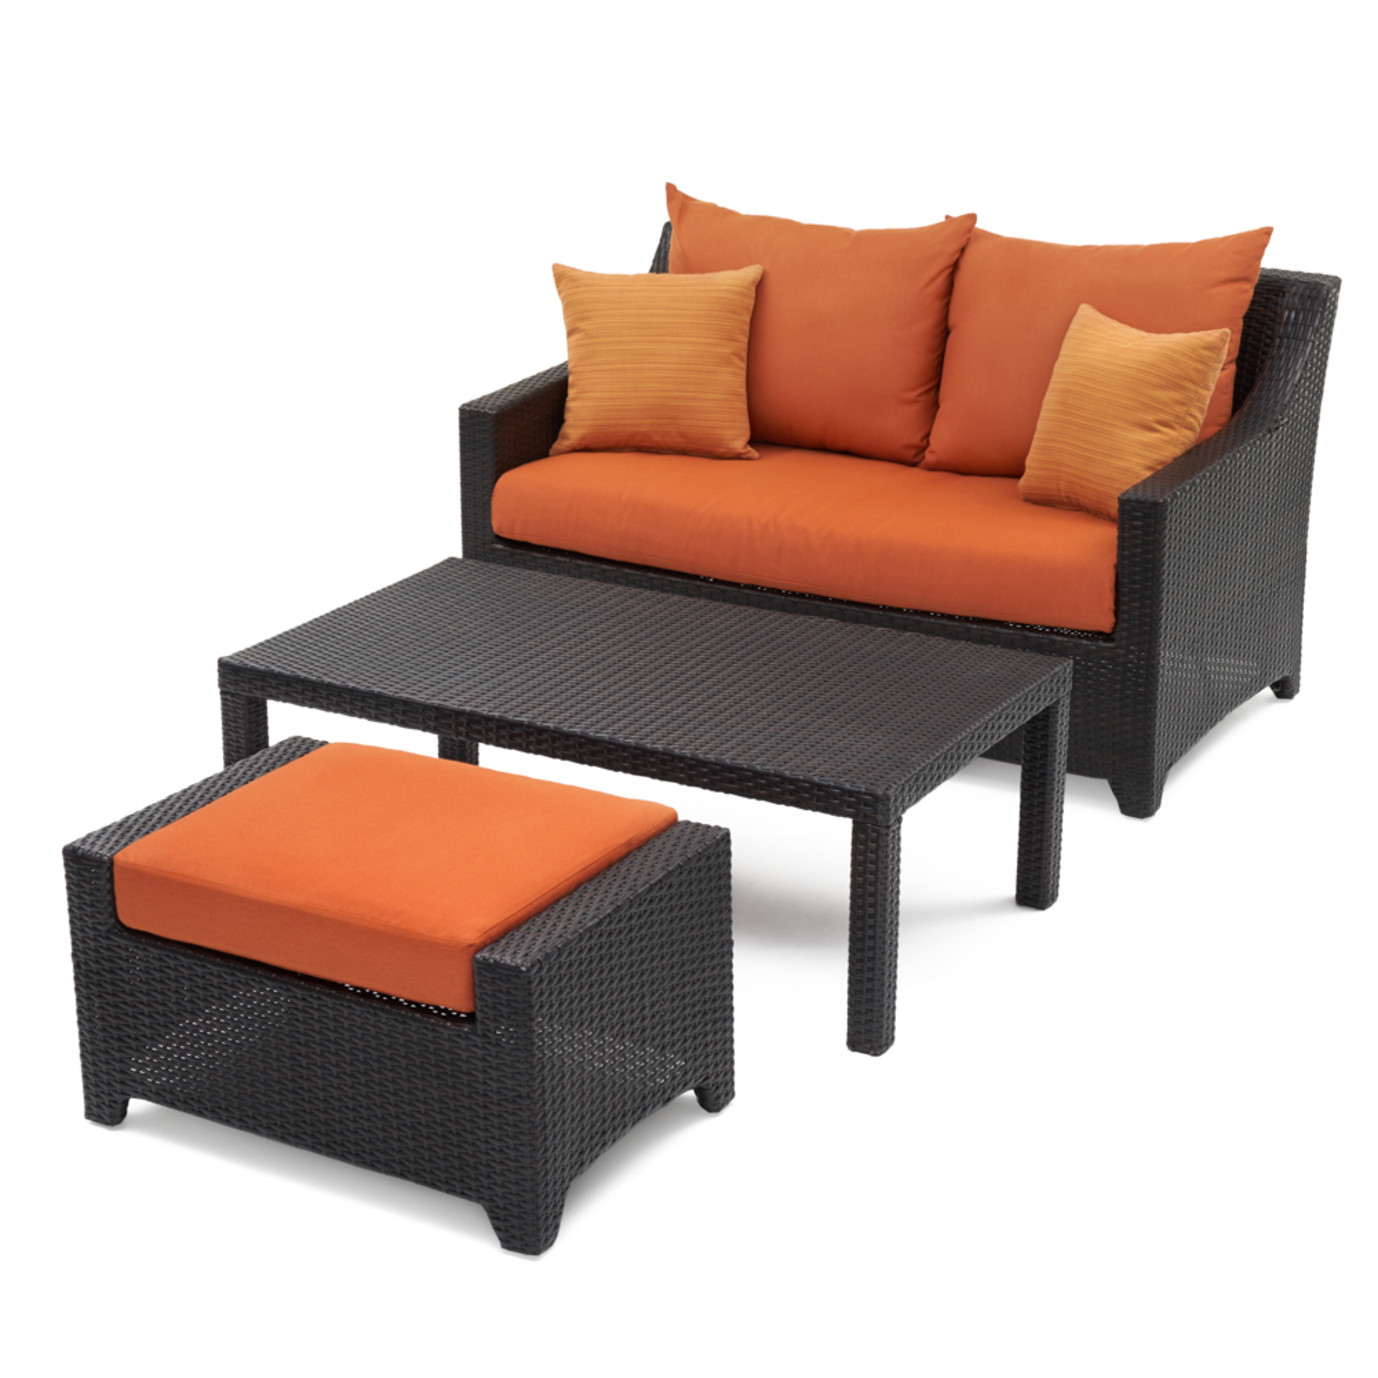 Deco Loveseat And Ottoman With Coffee Table Tikka Orange Rst Brands